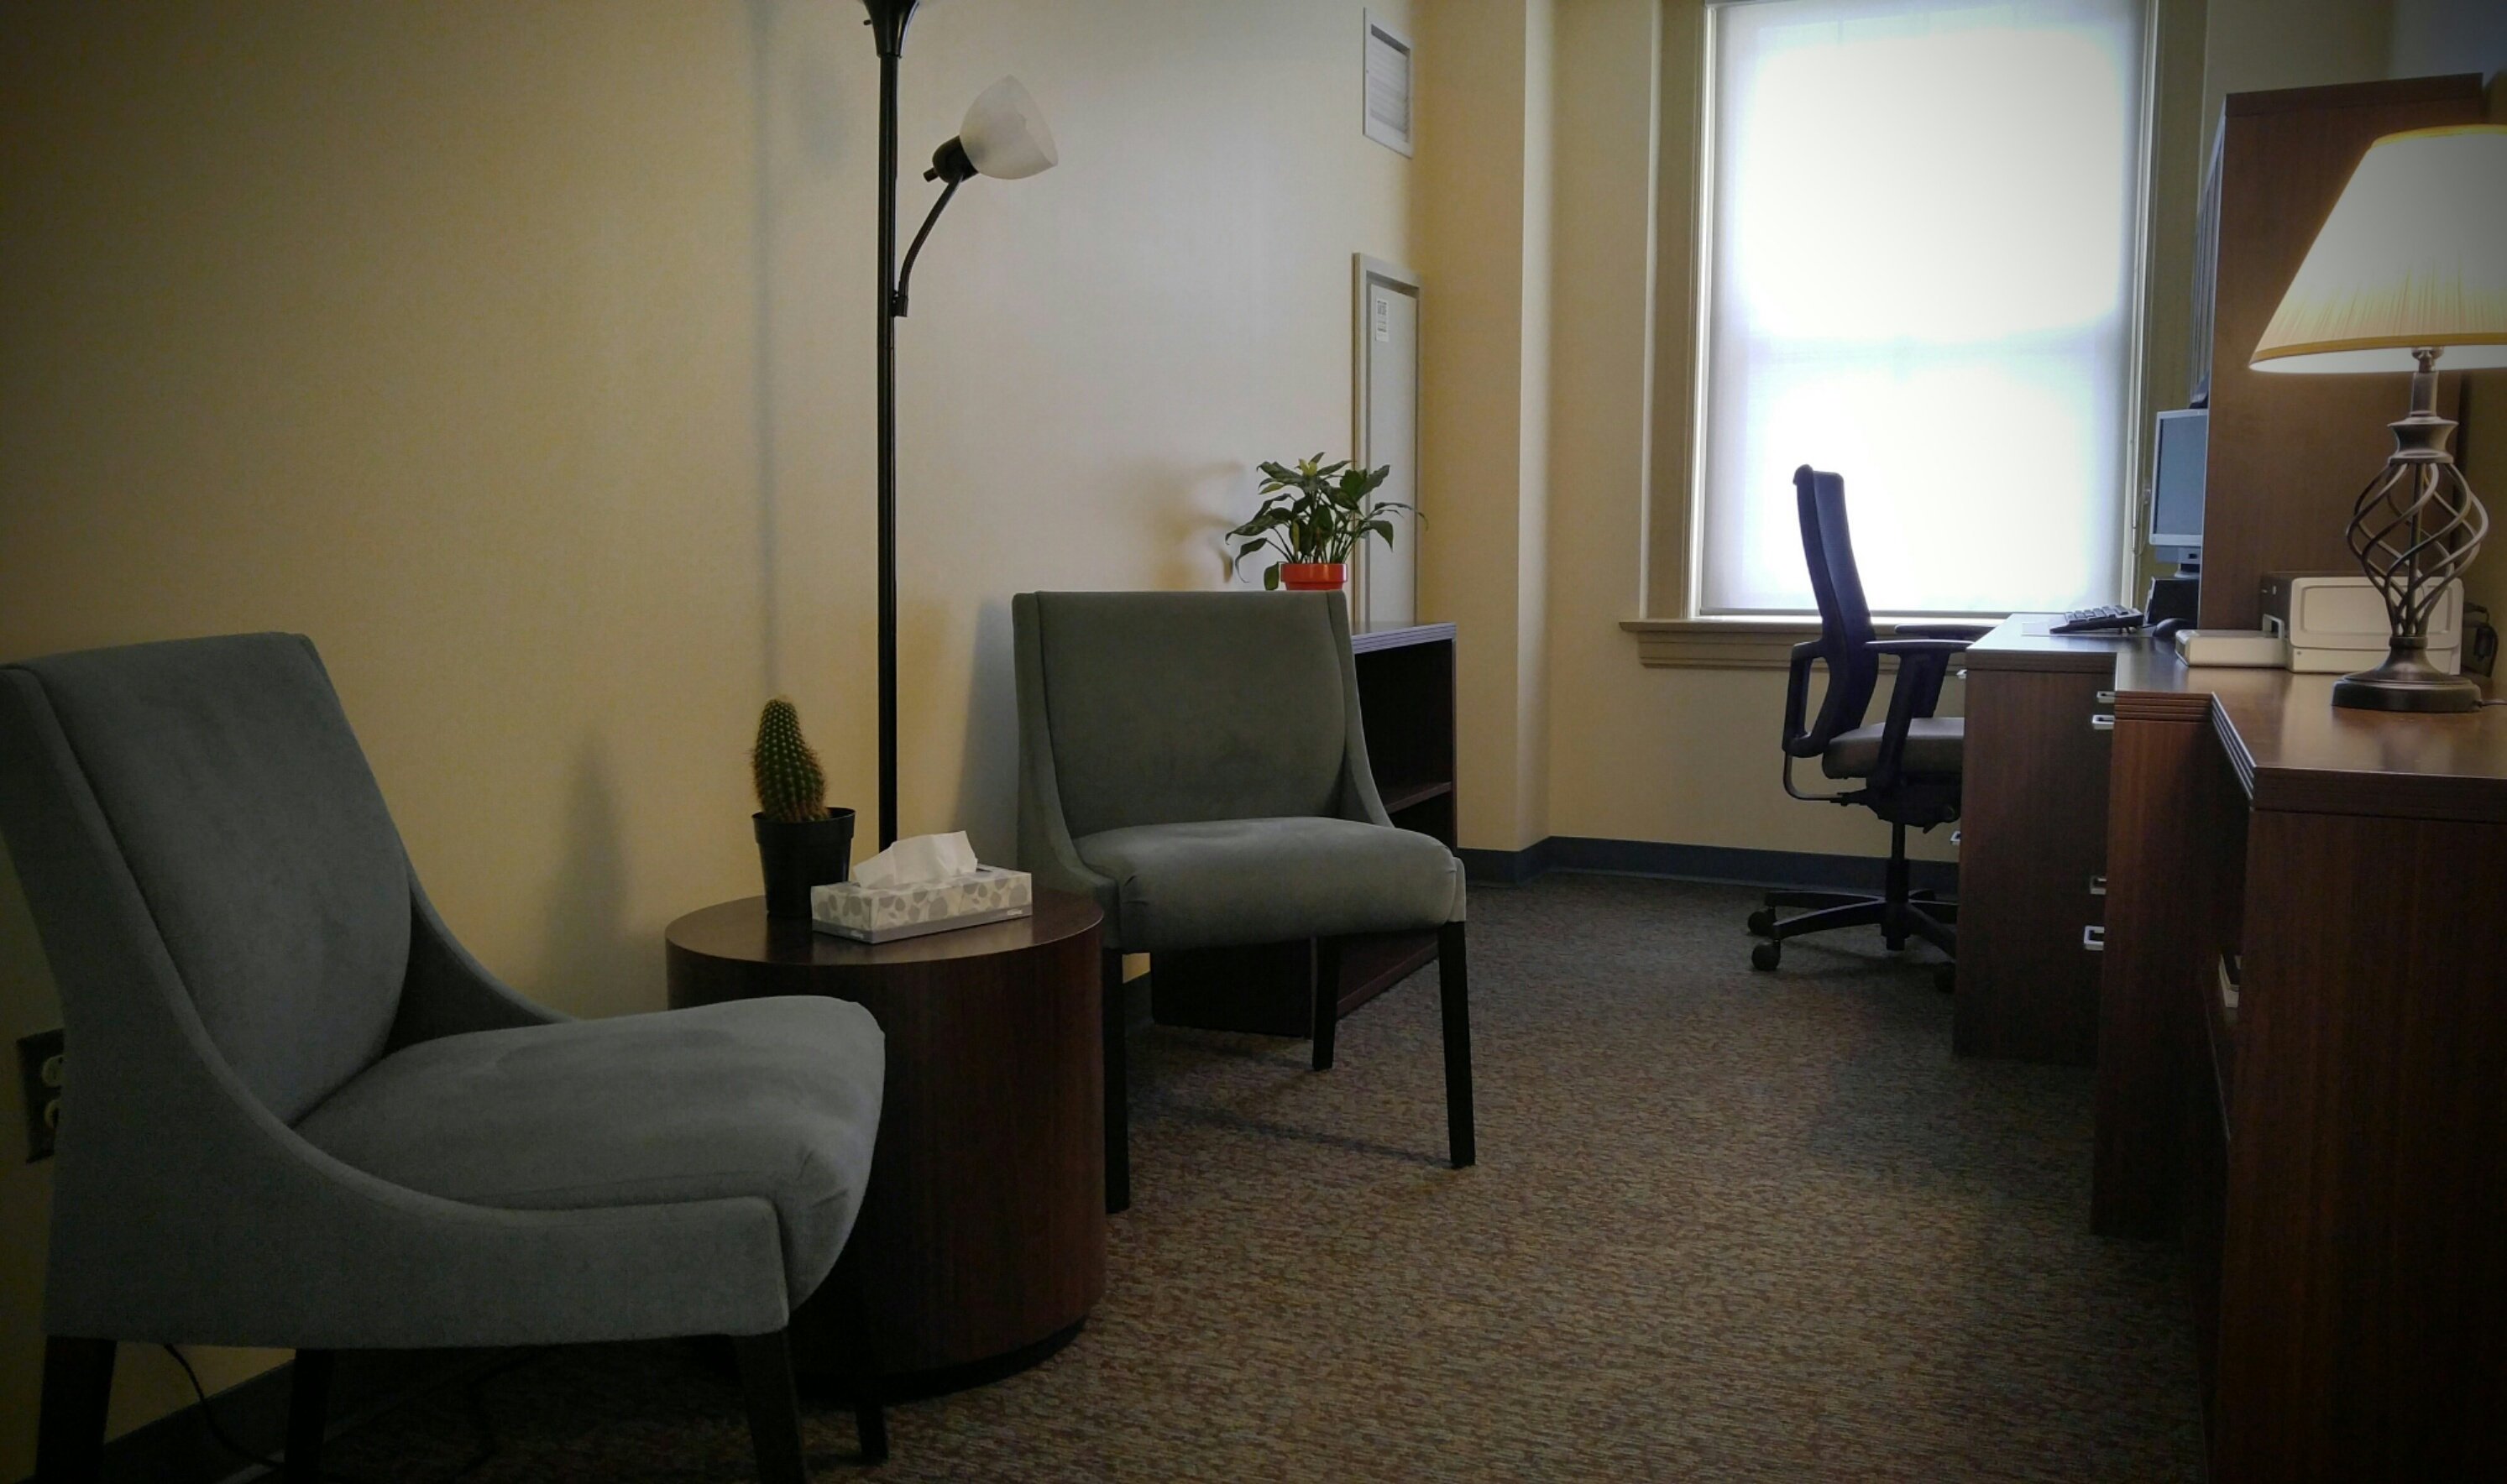 Counseling Services Office